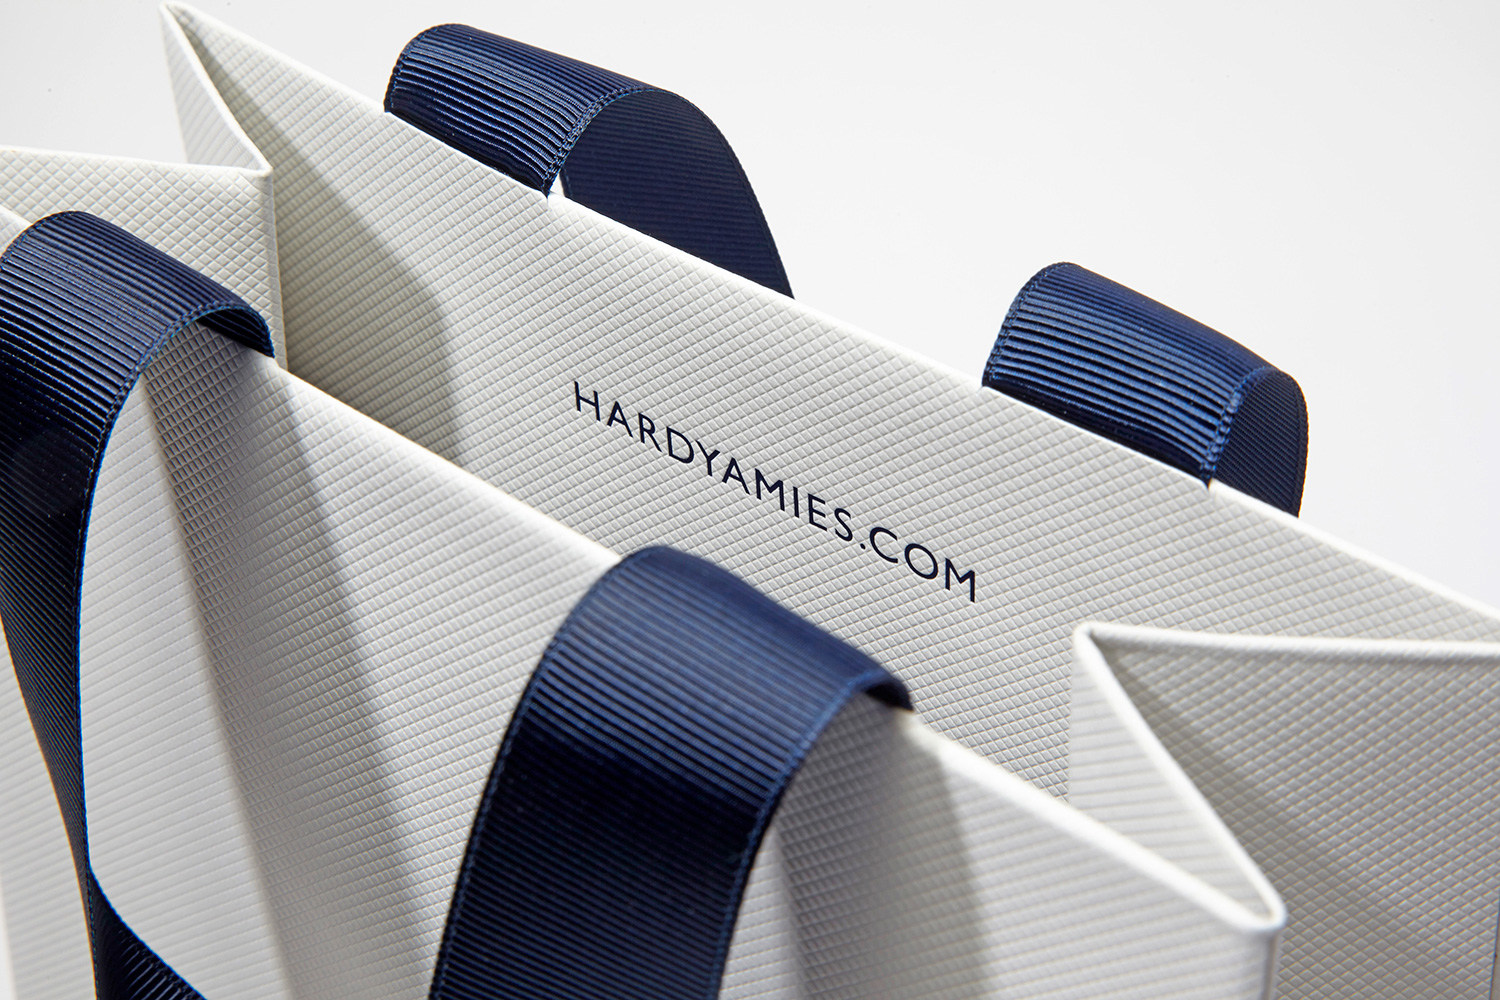 Progress Packaging HardyAmies Luxury Fashion Ribbon Grosgrain Thick Silk Handles